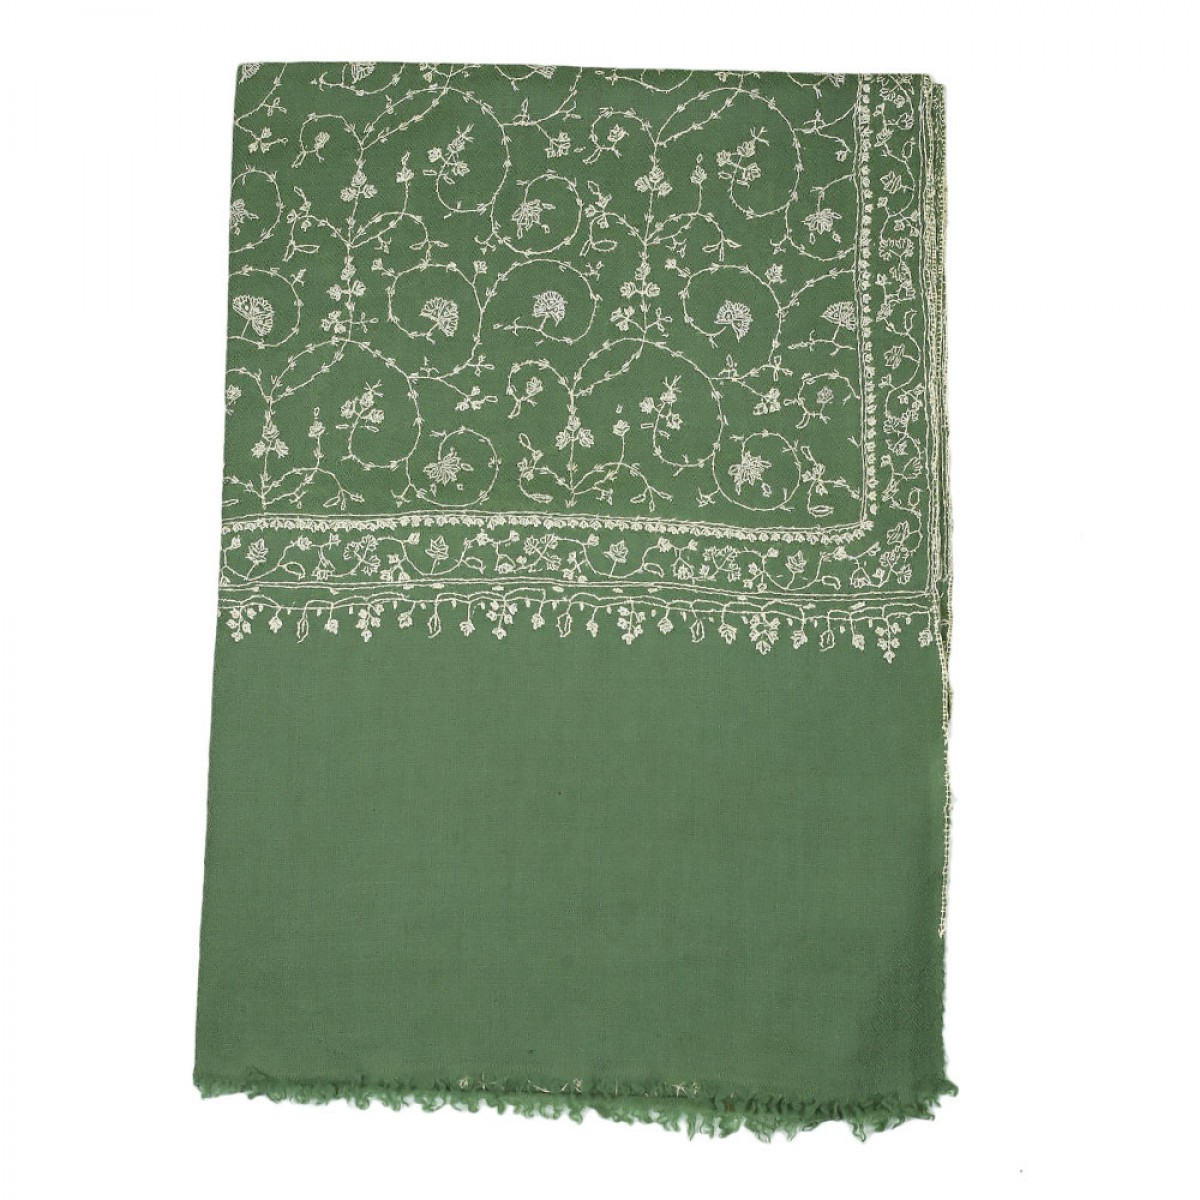 Embroidered Handloom Pashmina Stole - Moss Green